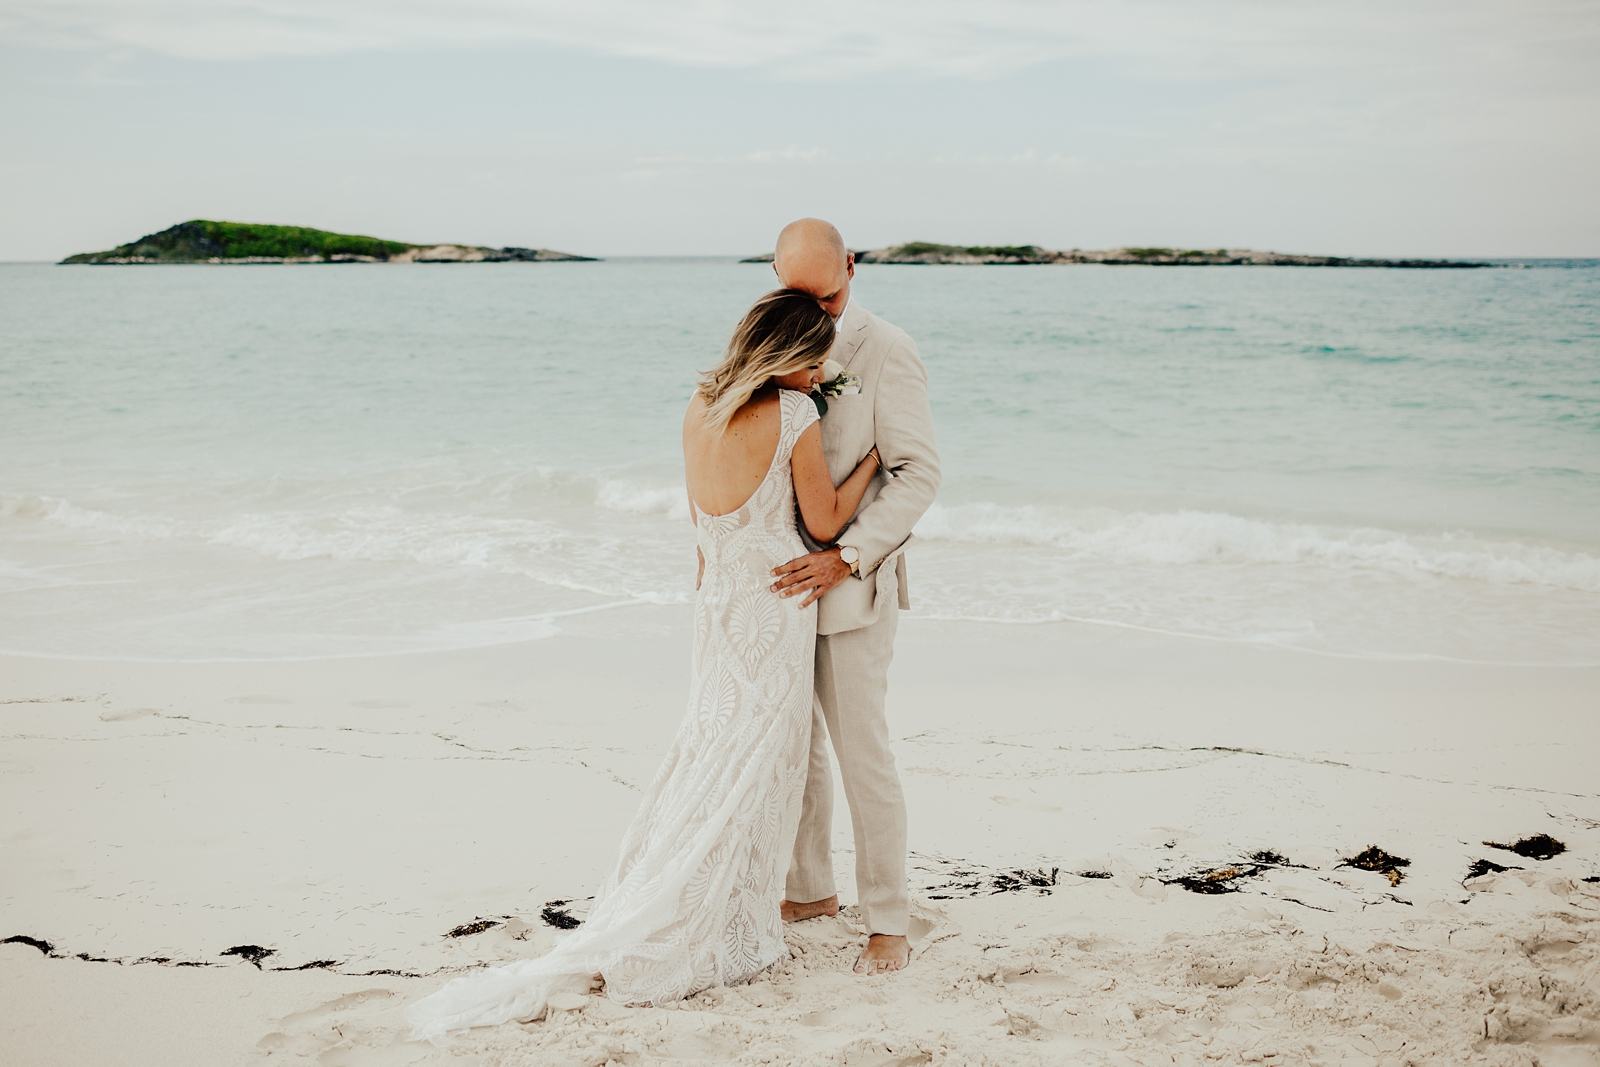 Jenni & Andrew Intimate Beach Destination Wedding in Little Exuma, Bahamas_0488.jpg